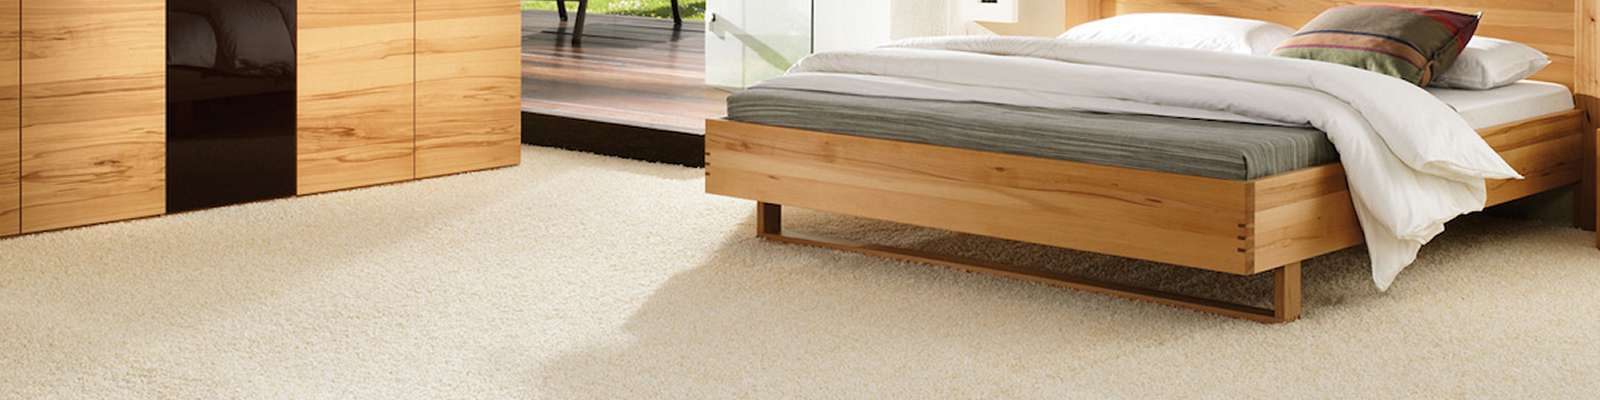 Hertford Flooring Quality Wood Flooring And Carpets In